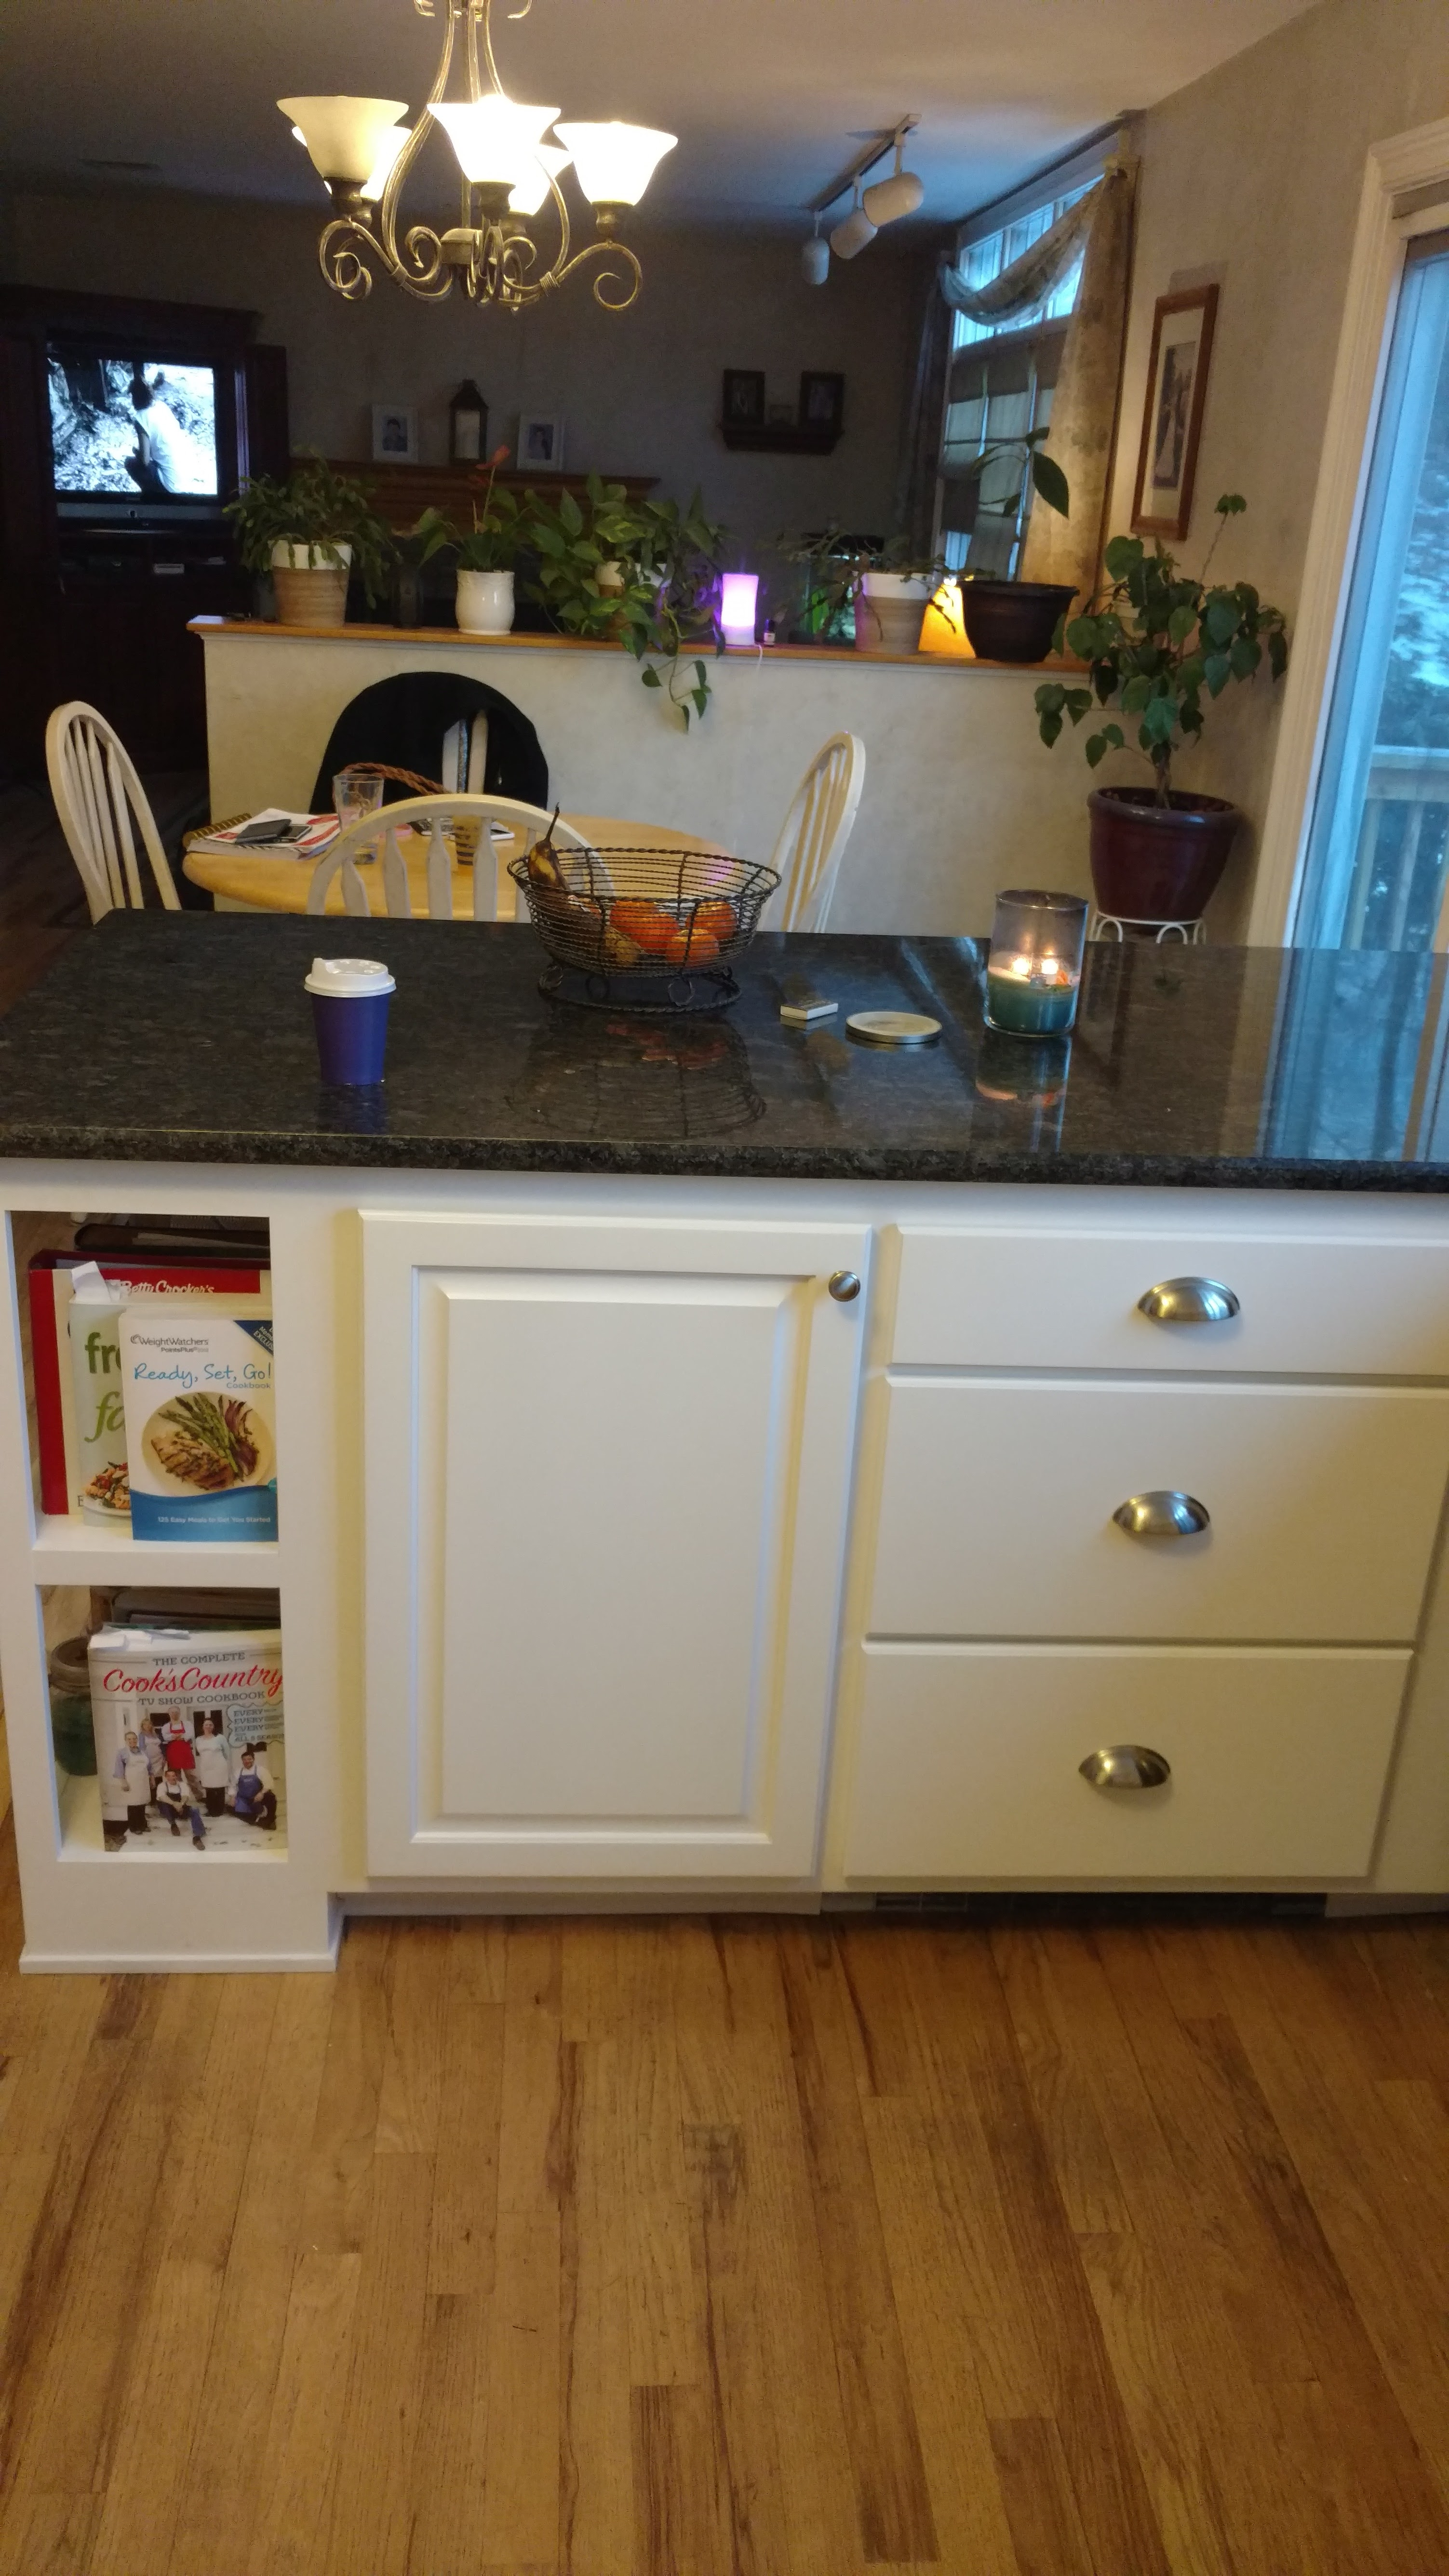 Kitchen cabinets to go ct - Kitchen Cabinet Refacing